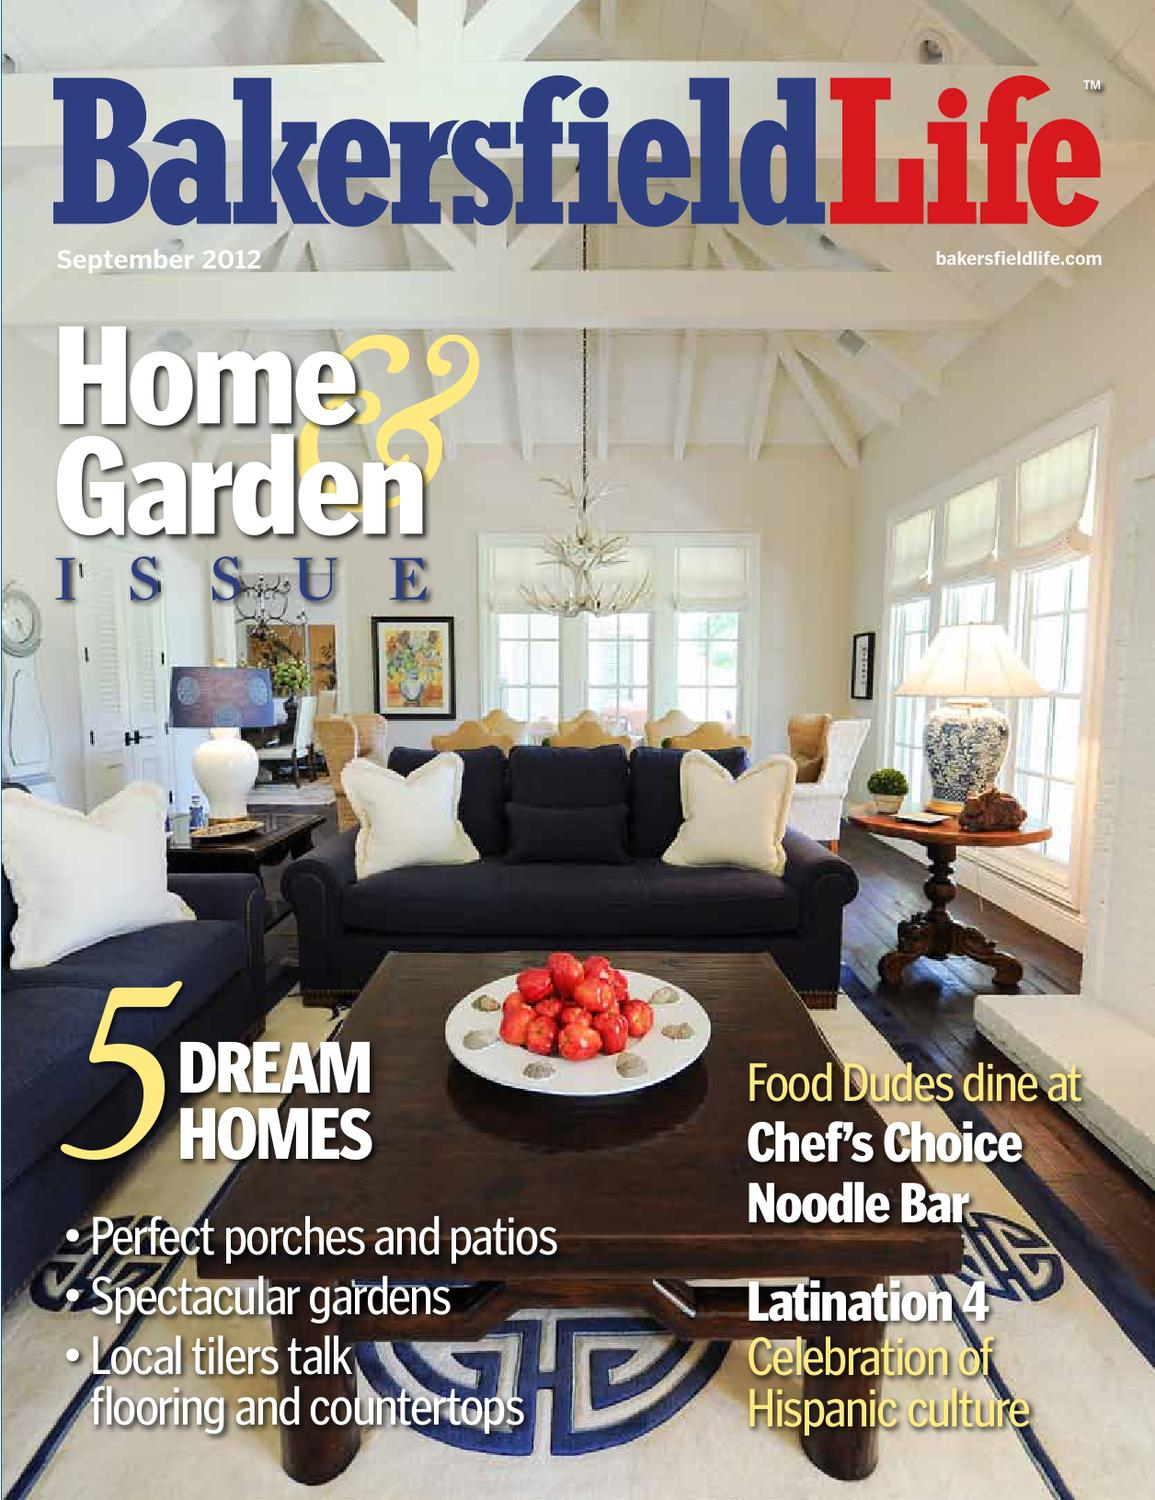 Bakersfield life magazine september 2012 by tbc media specialty publications issuu